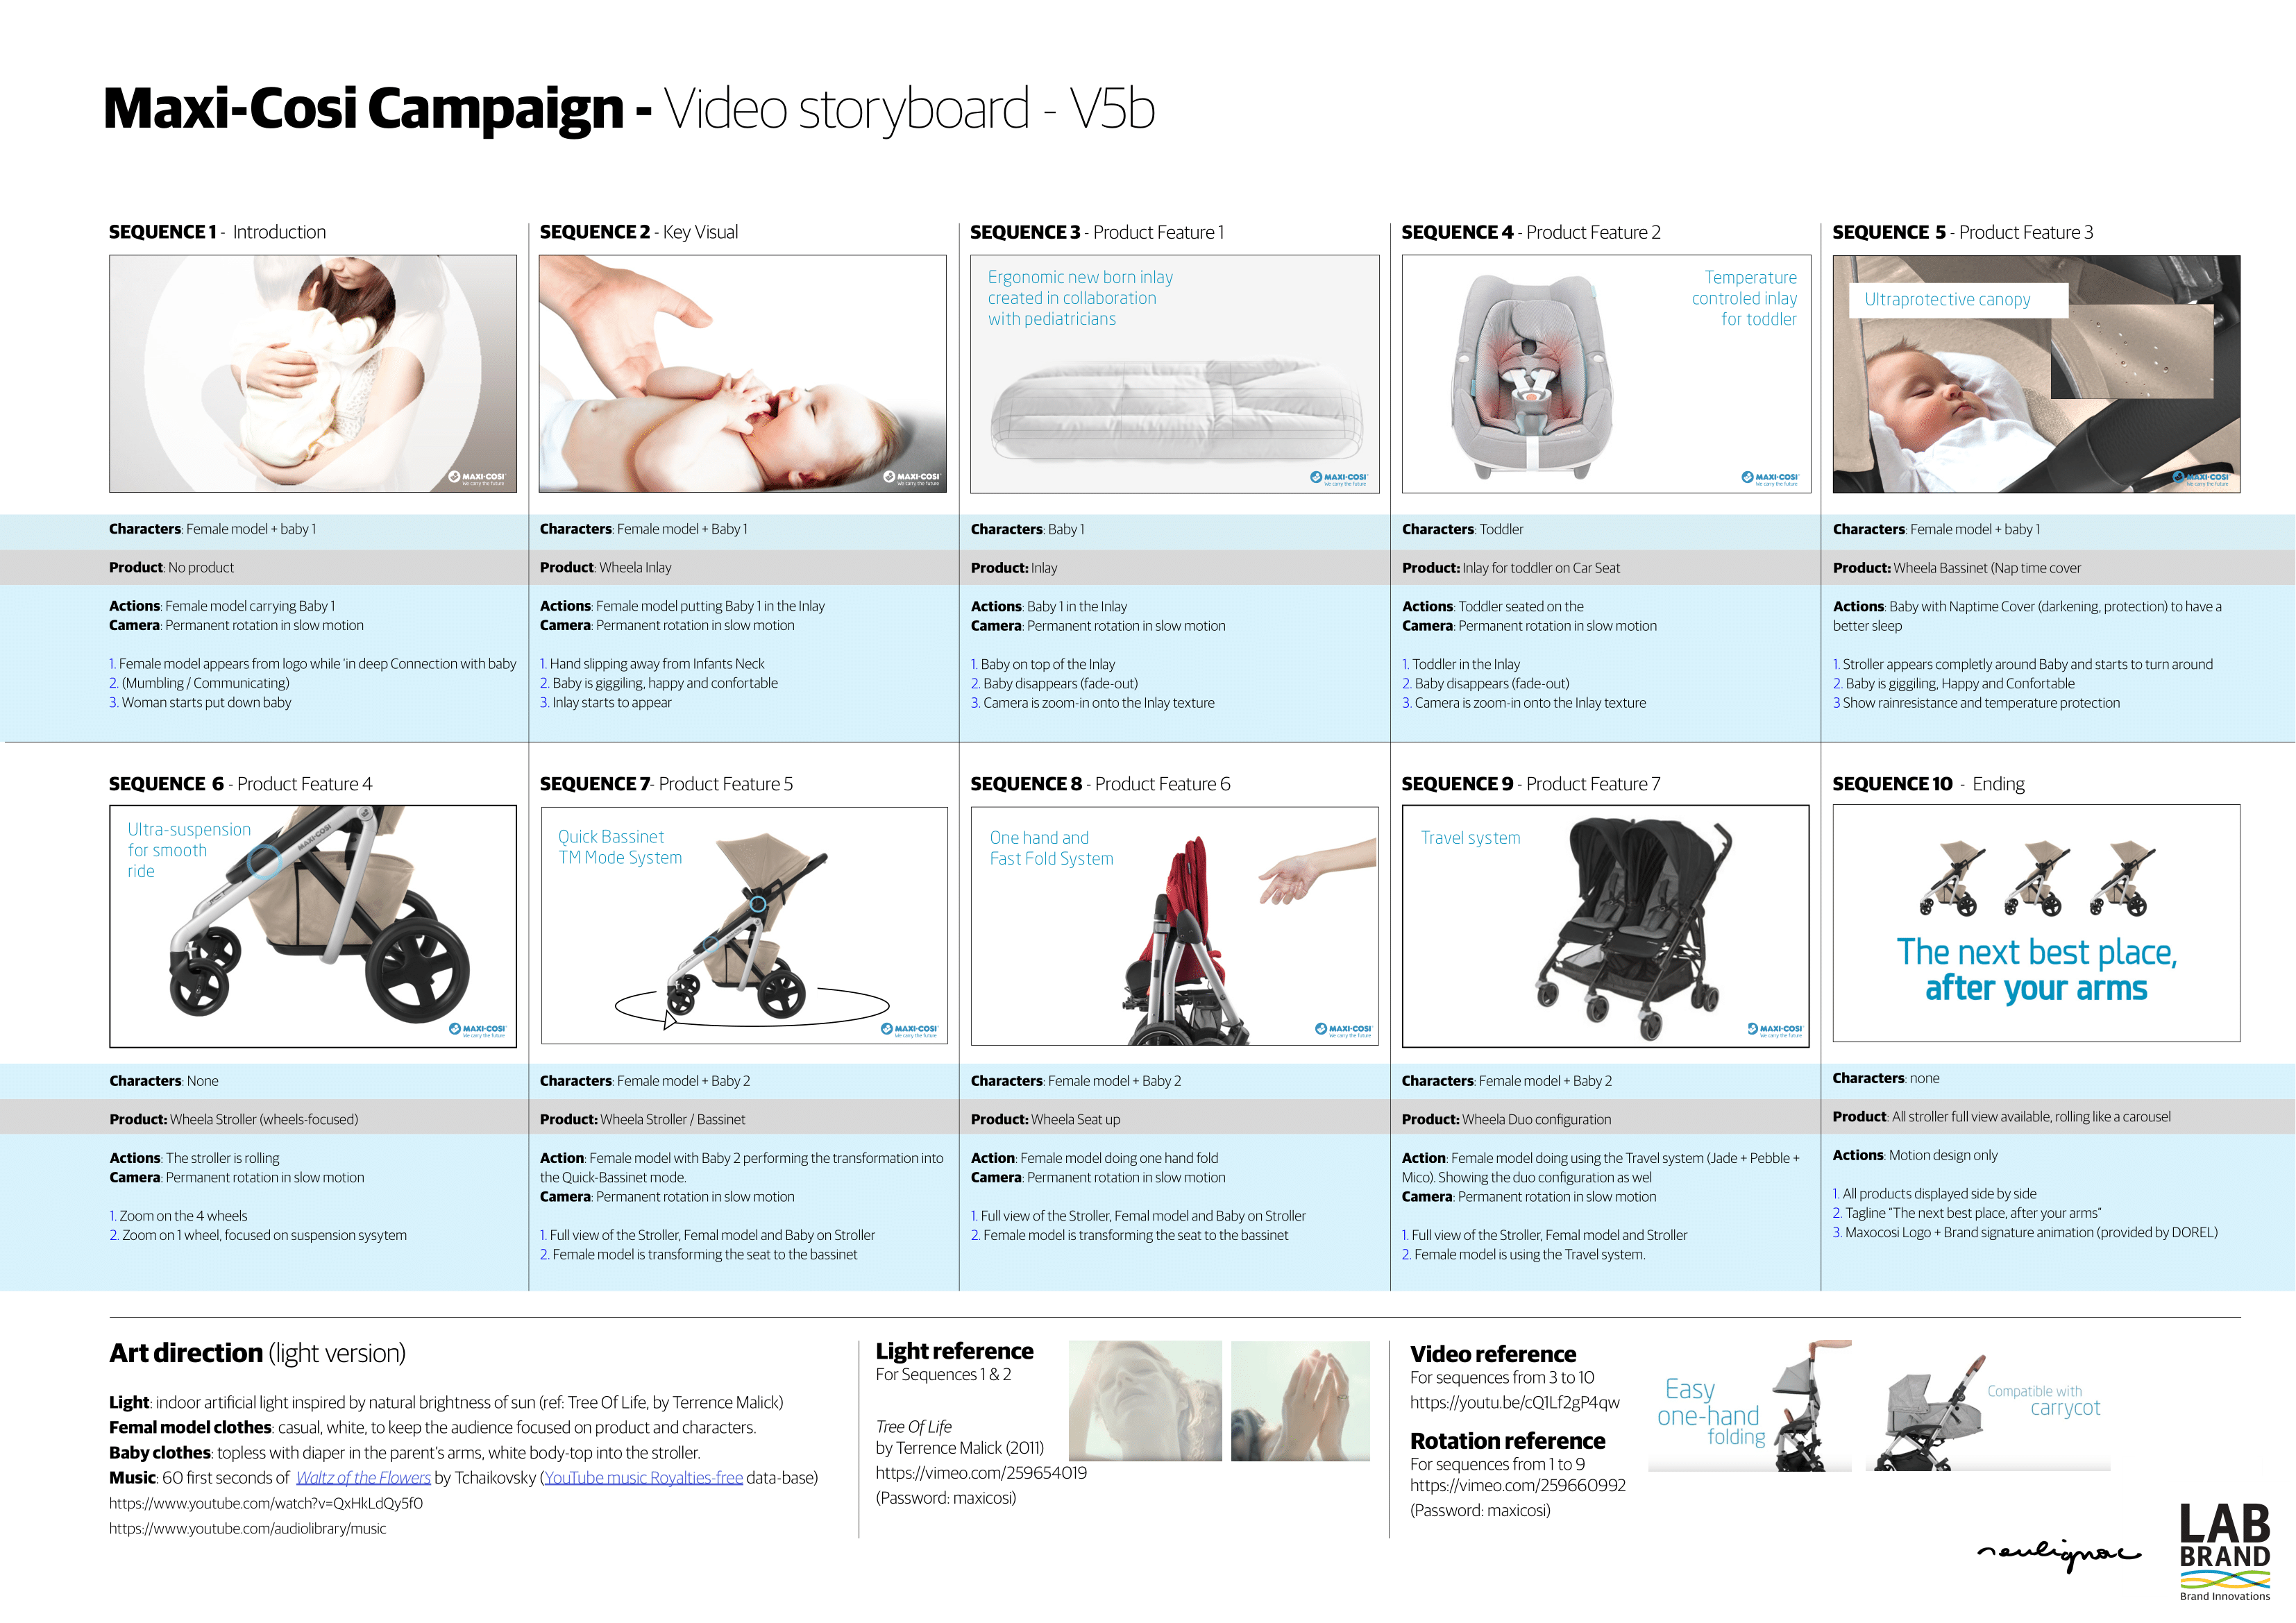 Maxi-Cosi Dorel Juvenile - Lila stroller, The next best place, after your arms - Storyboard & Art direction by François Soulignac, MADJOR Labbrand Shanghai